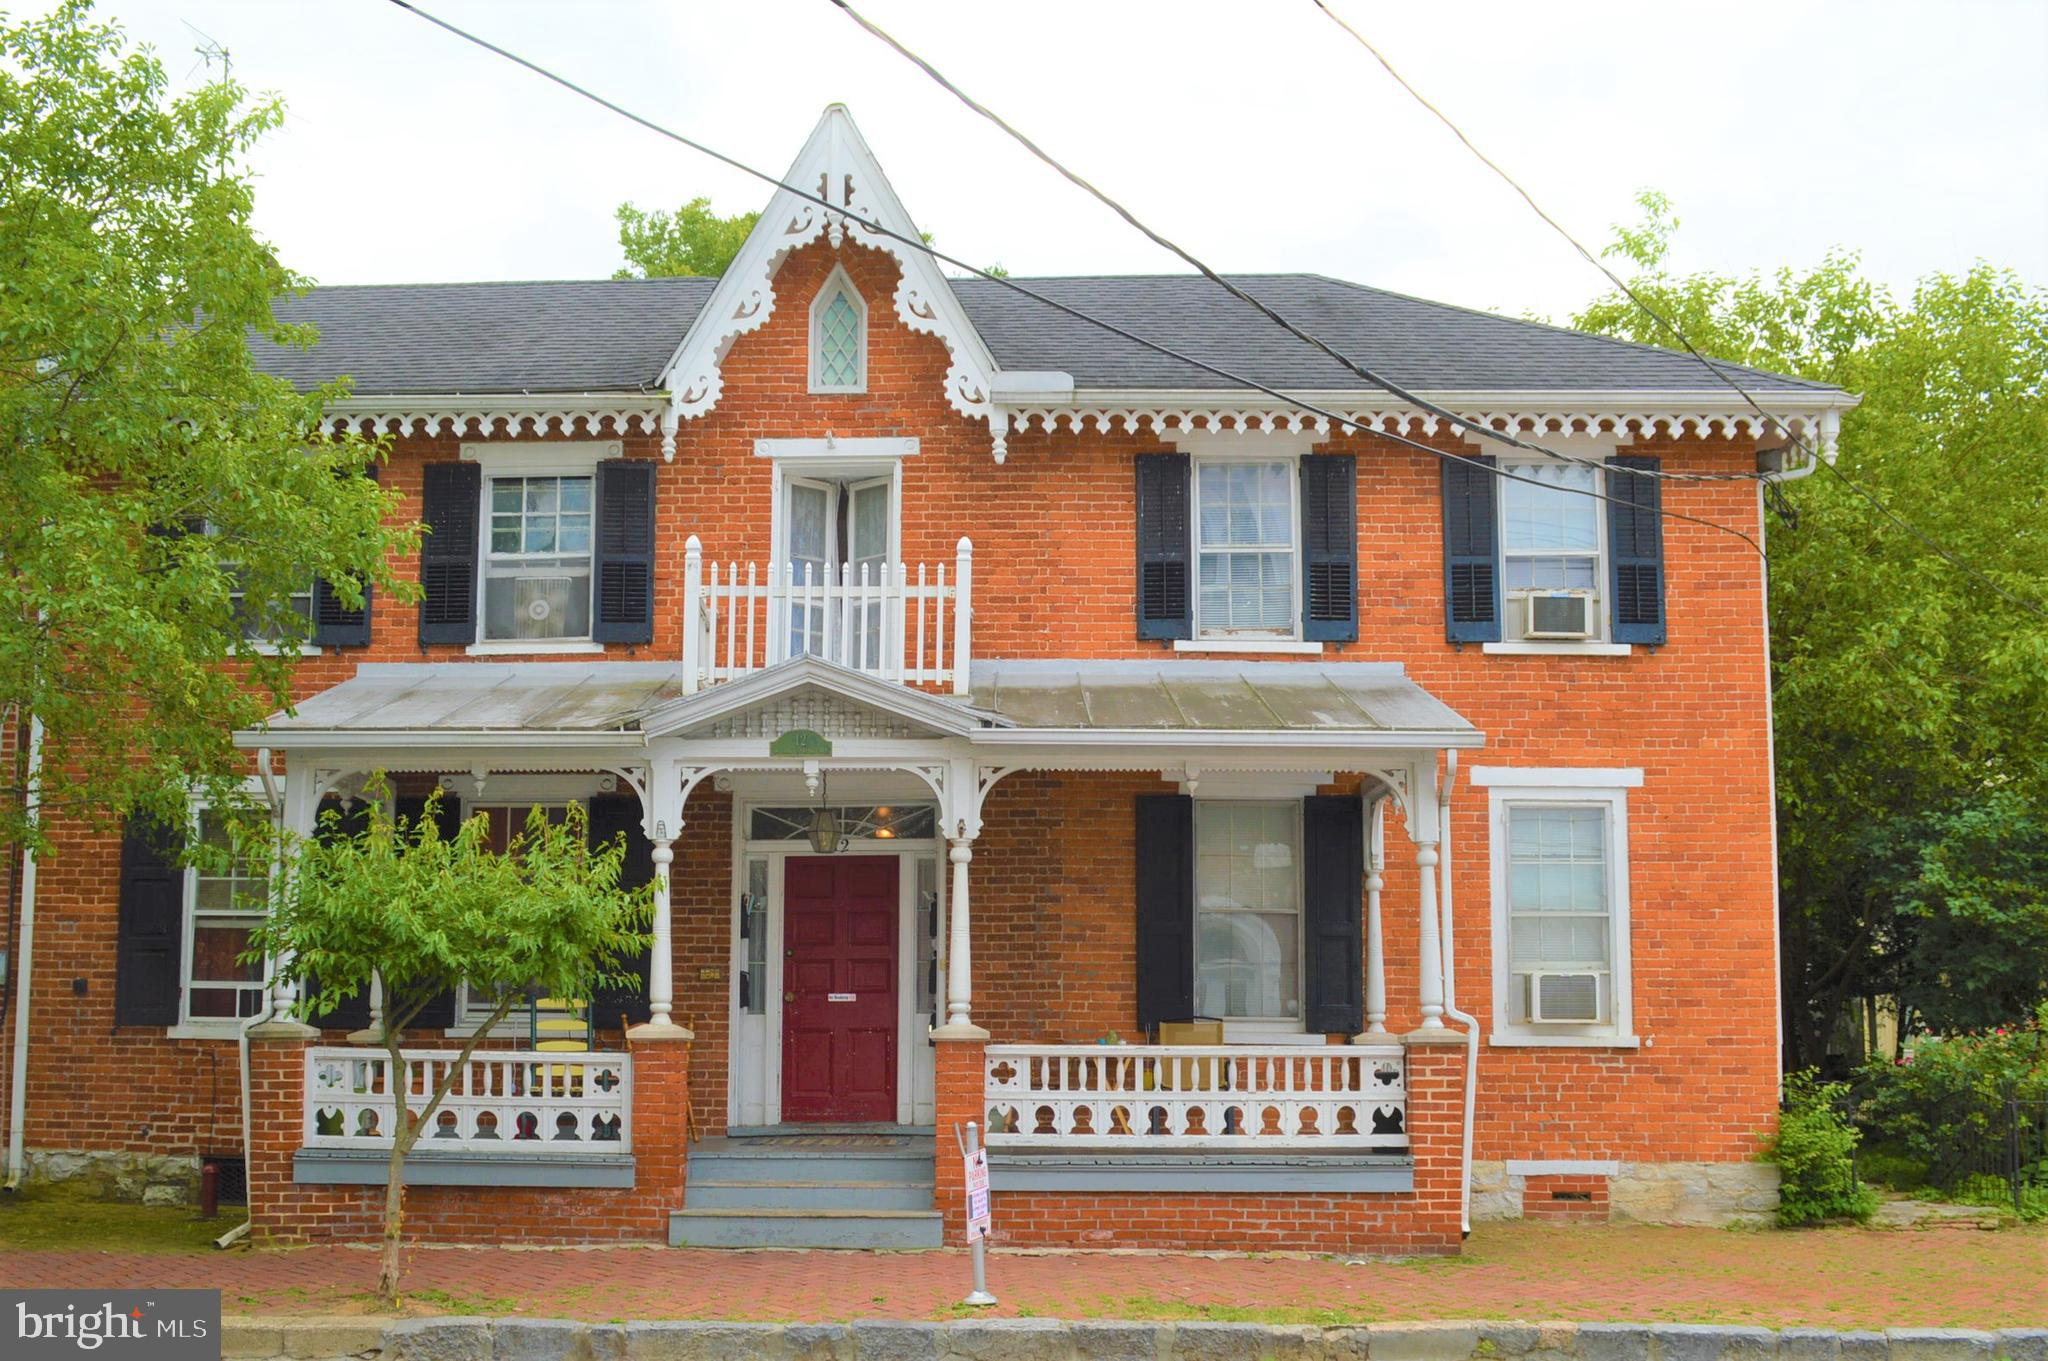 12 W BIG SPRING AVENUE, NEWVILLE, PA 17241